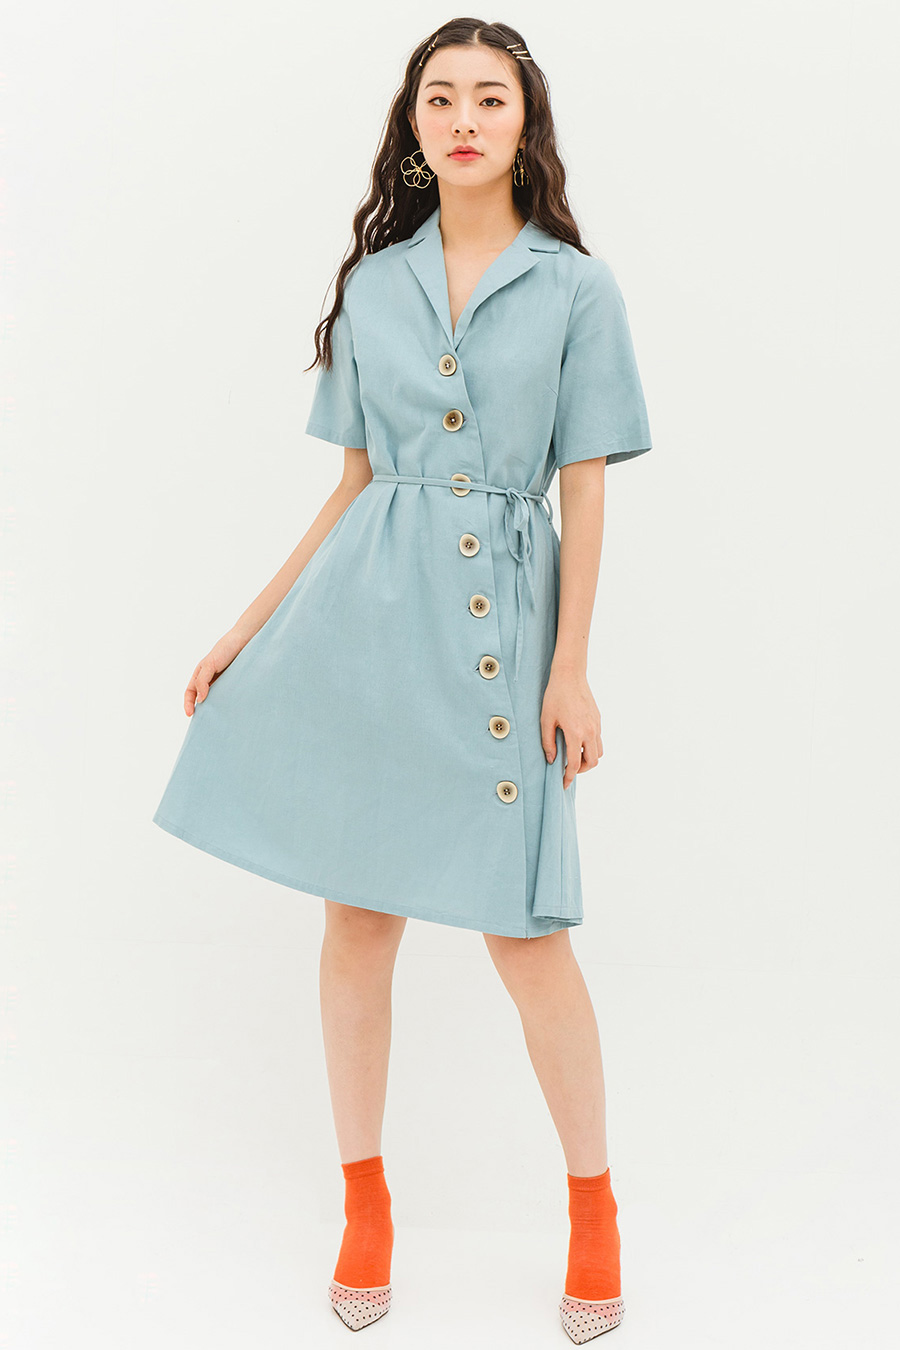 HEIDI DRESS - LAKE BLUE [BY MODPARADE]